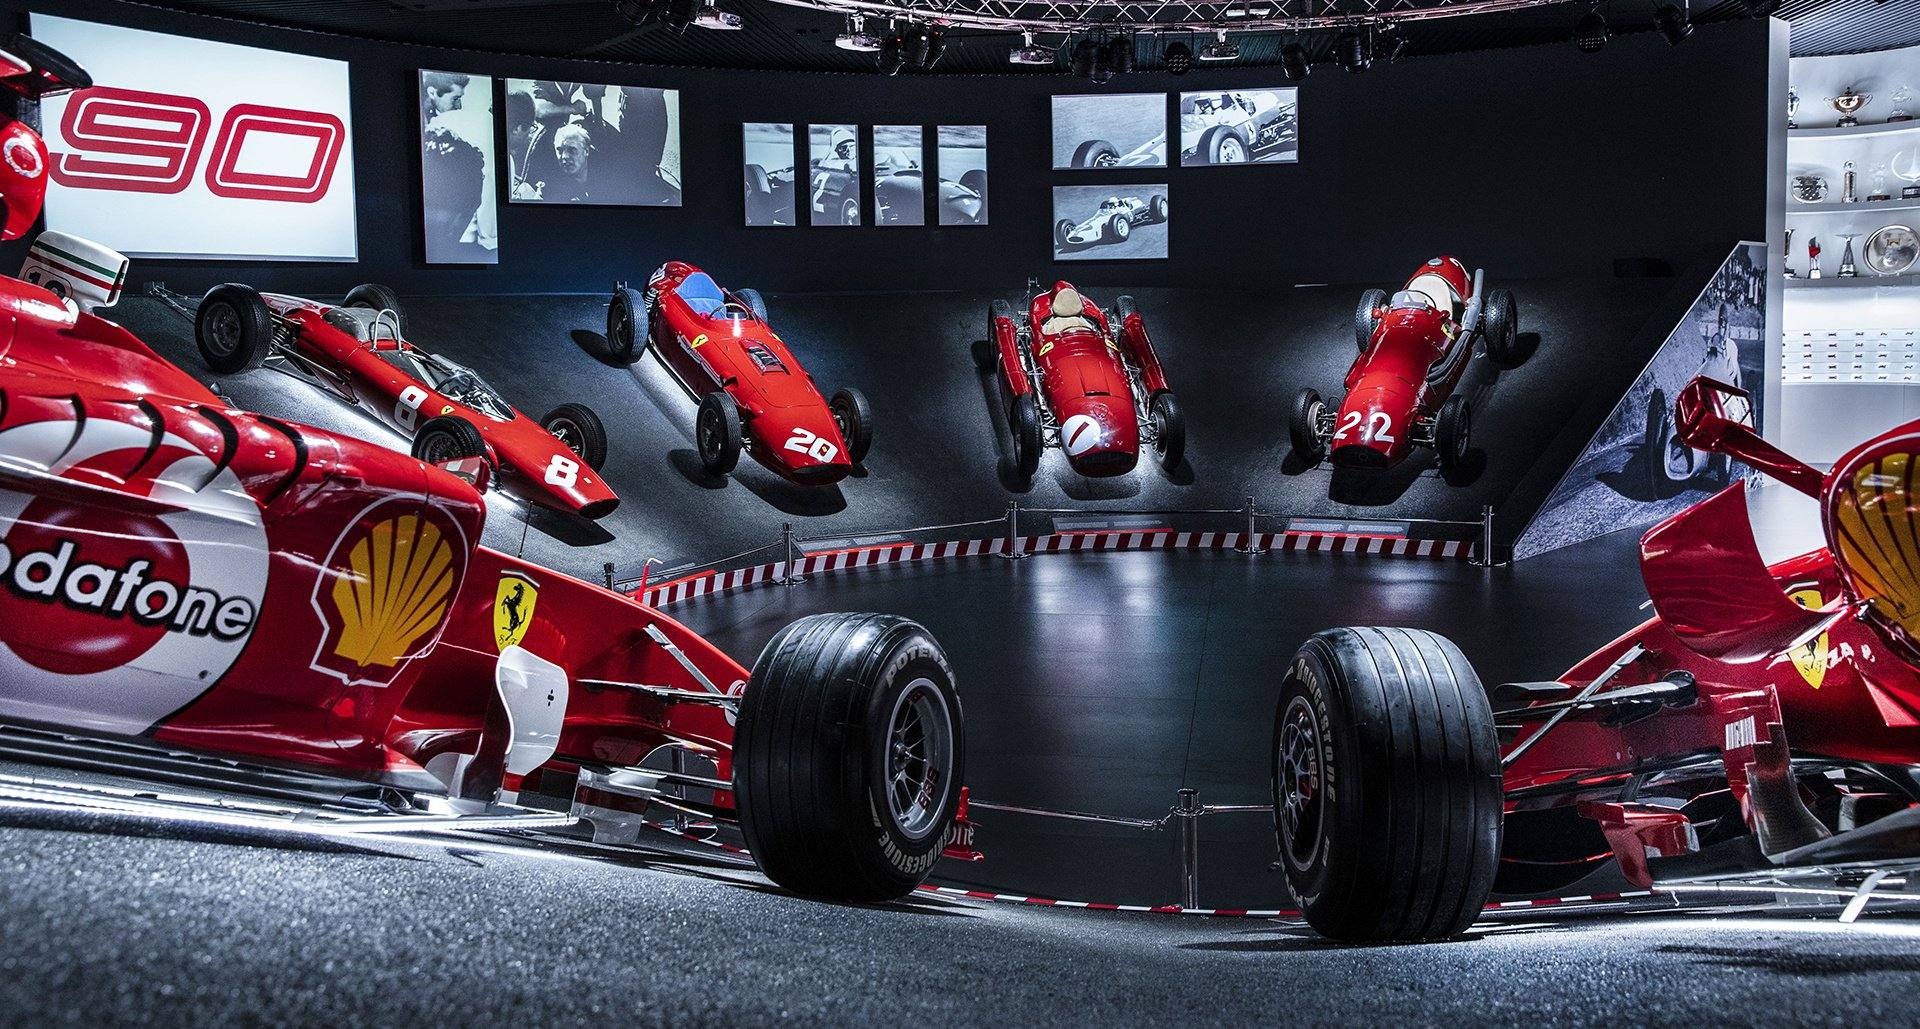 Ferrari-90-Years-Of-Racing-Special-Exhibition-1